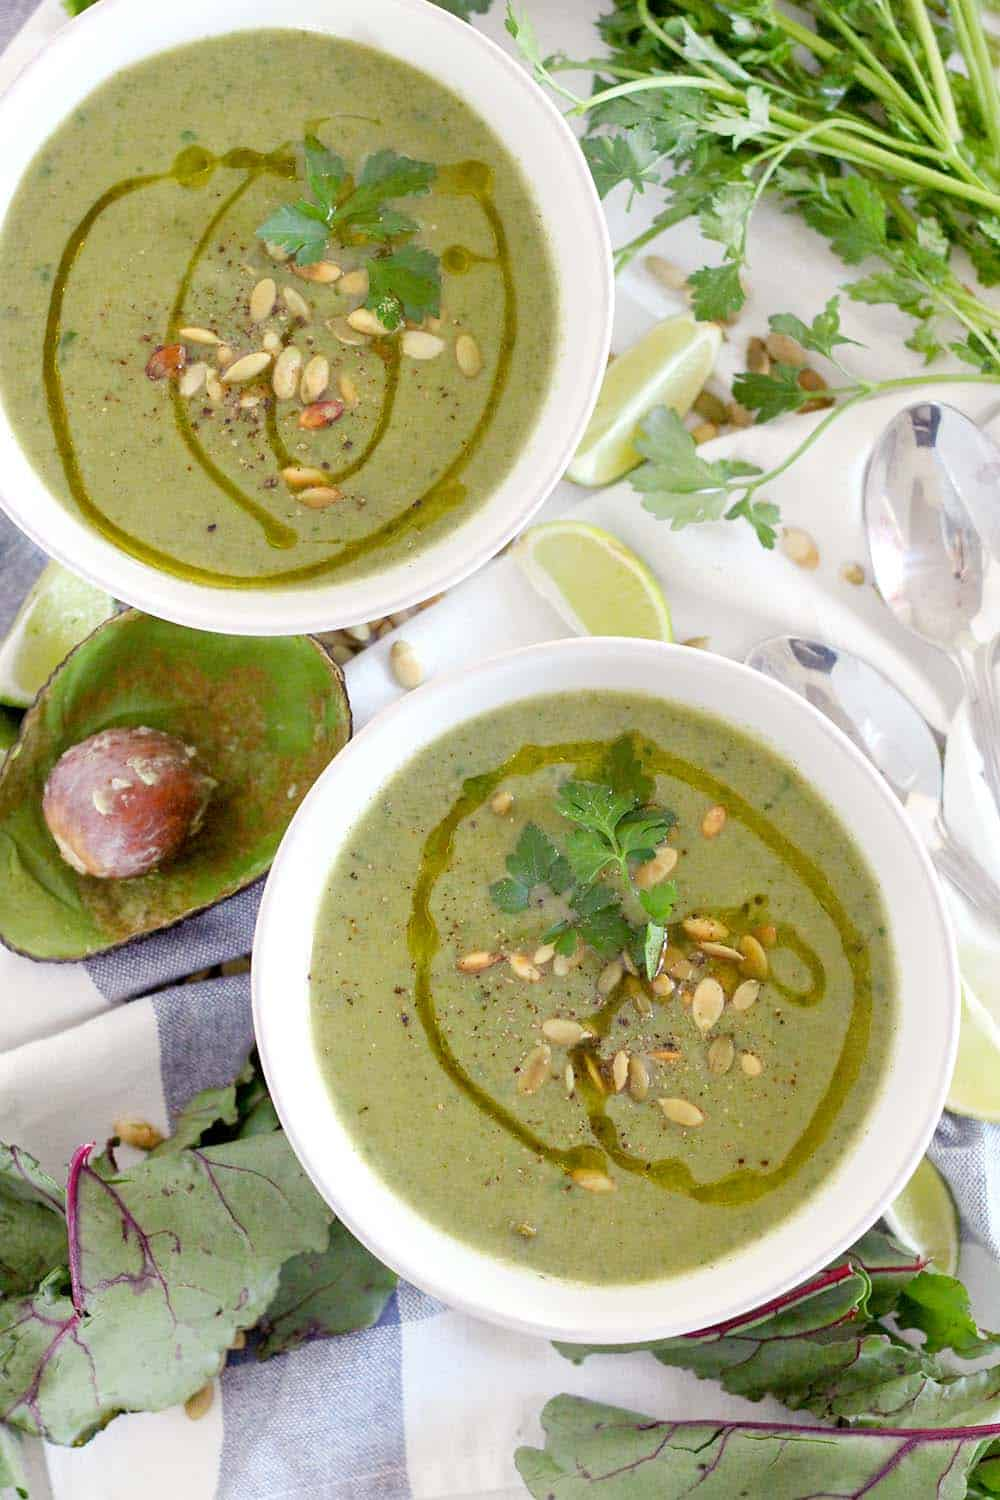 This Broccoli Avocado Soup with Beet Greens is creamy, vegan, and SUPER healthy. I love this soup as a detox after over indulging! You can use spinach, kale, or other greens as well. | www.bowlofdelicious.com